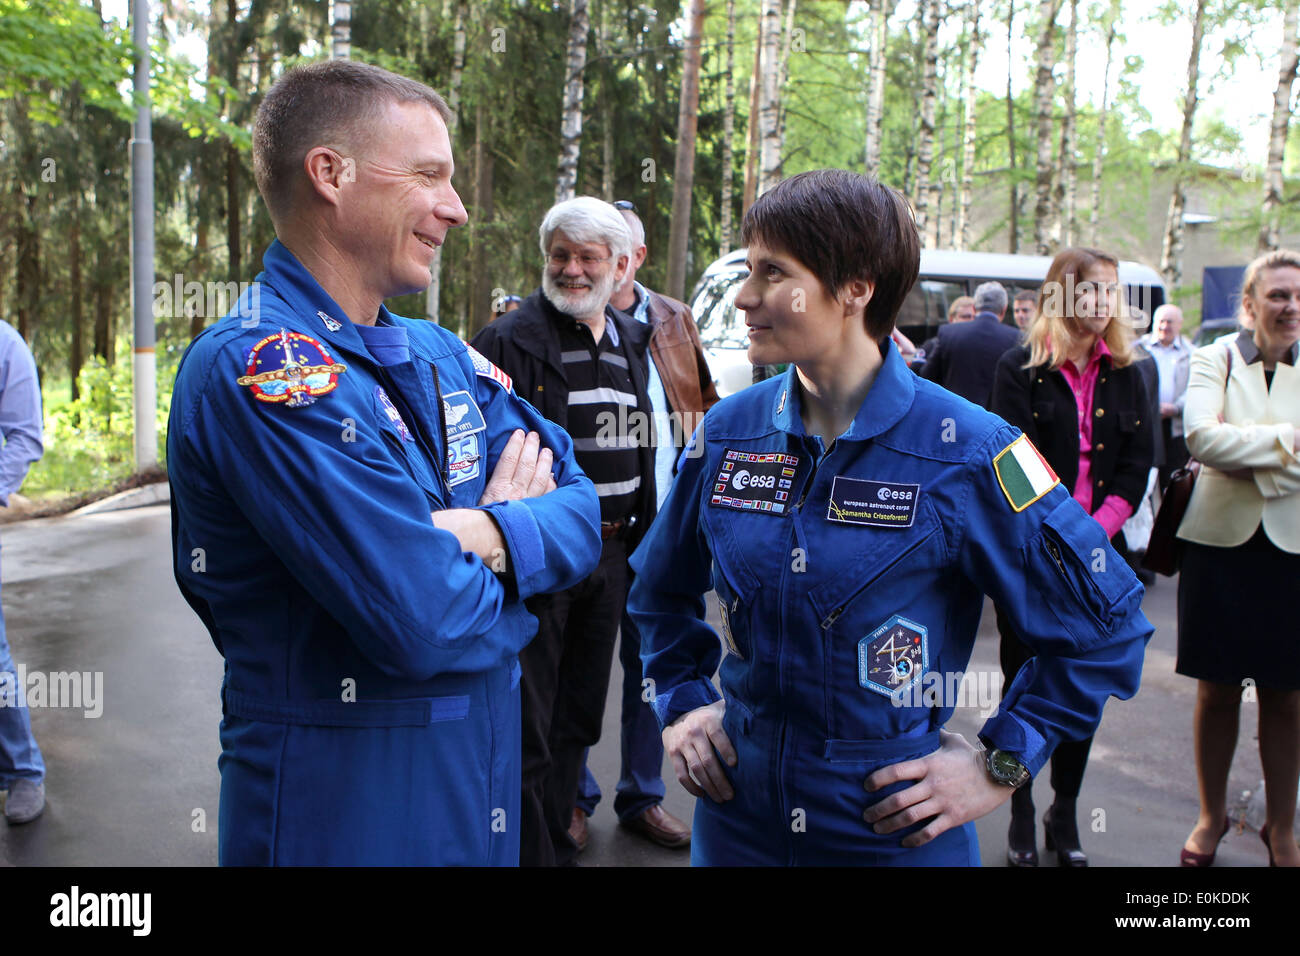 ISS Expedition 40/41 backup crew members Terry Virts of NASA, left, and Samantha Cristoforetti of the European Space Agency at the Gagarin Cosmonaut Training Center May 15, 2014 in Star City, Russia. - Stock Image